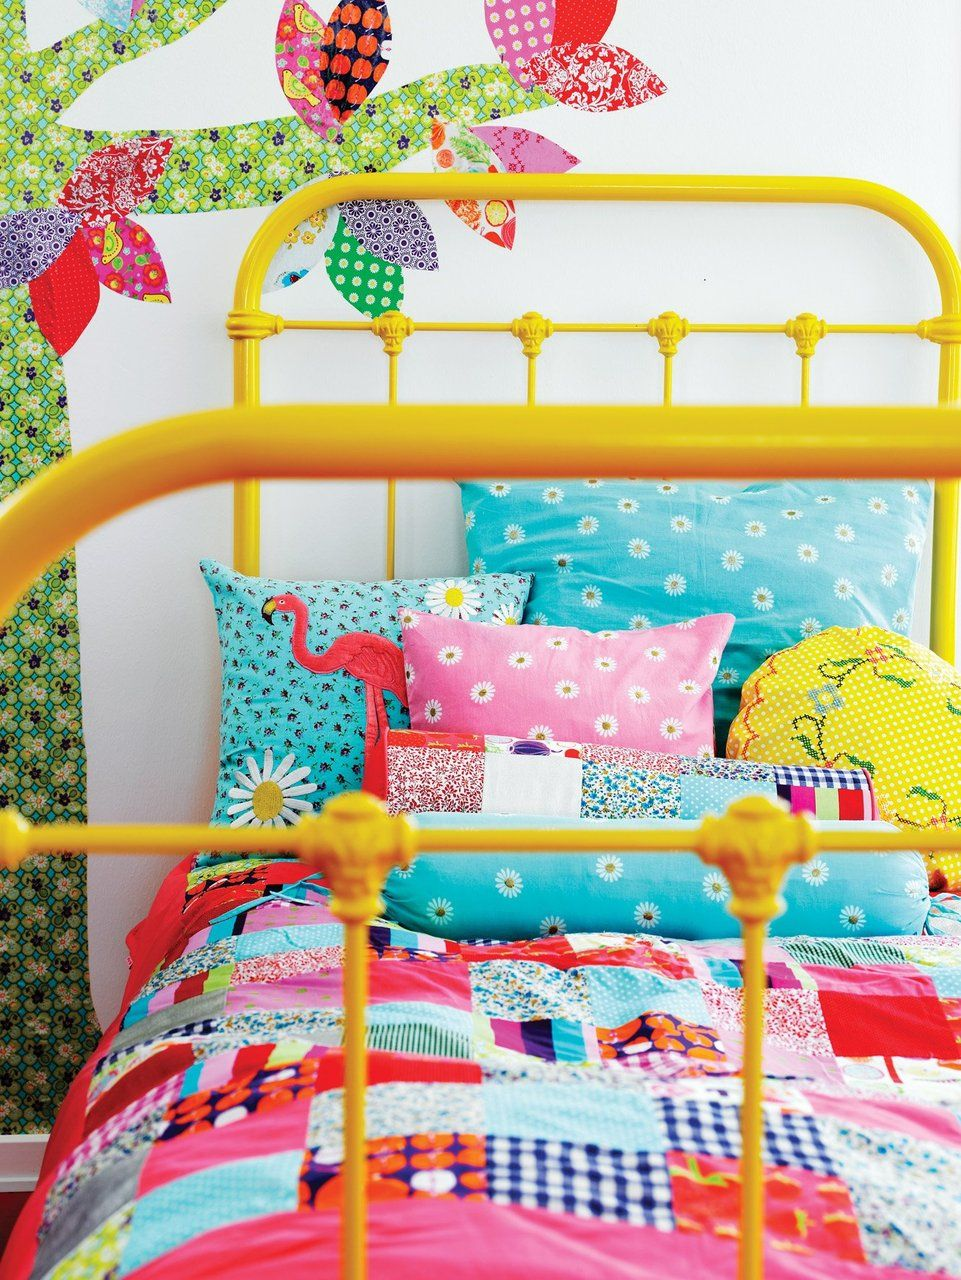 I Like The Yellow Bed Frame. Idea To Pick Up Metal Bed Frames At The  Auction And Spray Vibrant Colours.